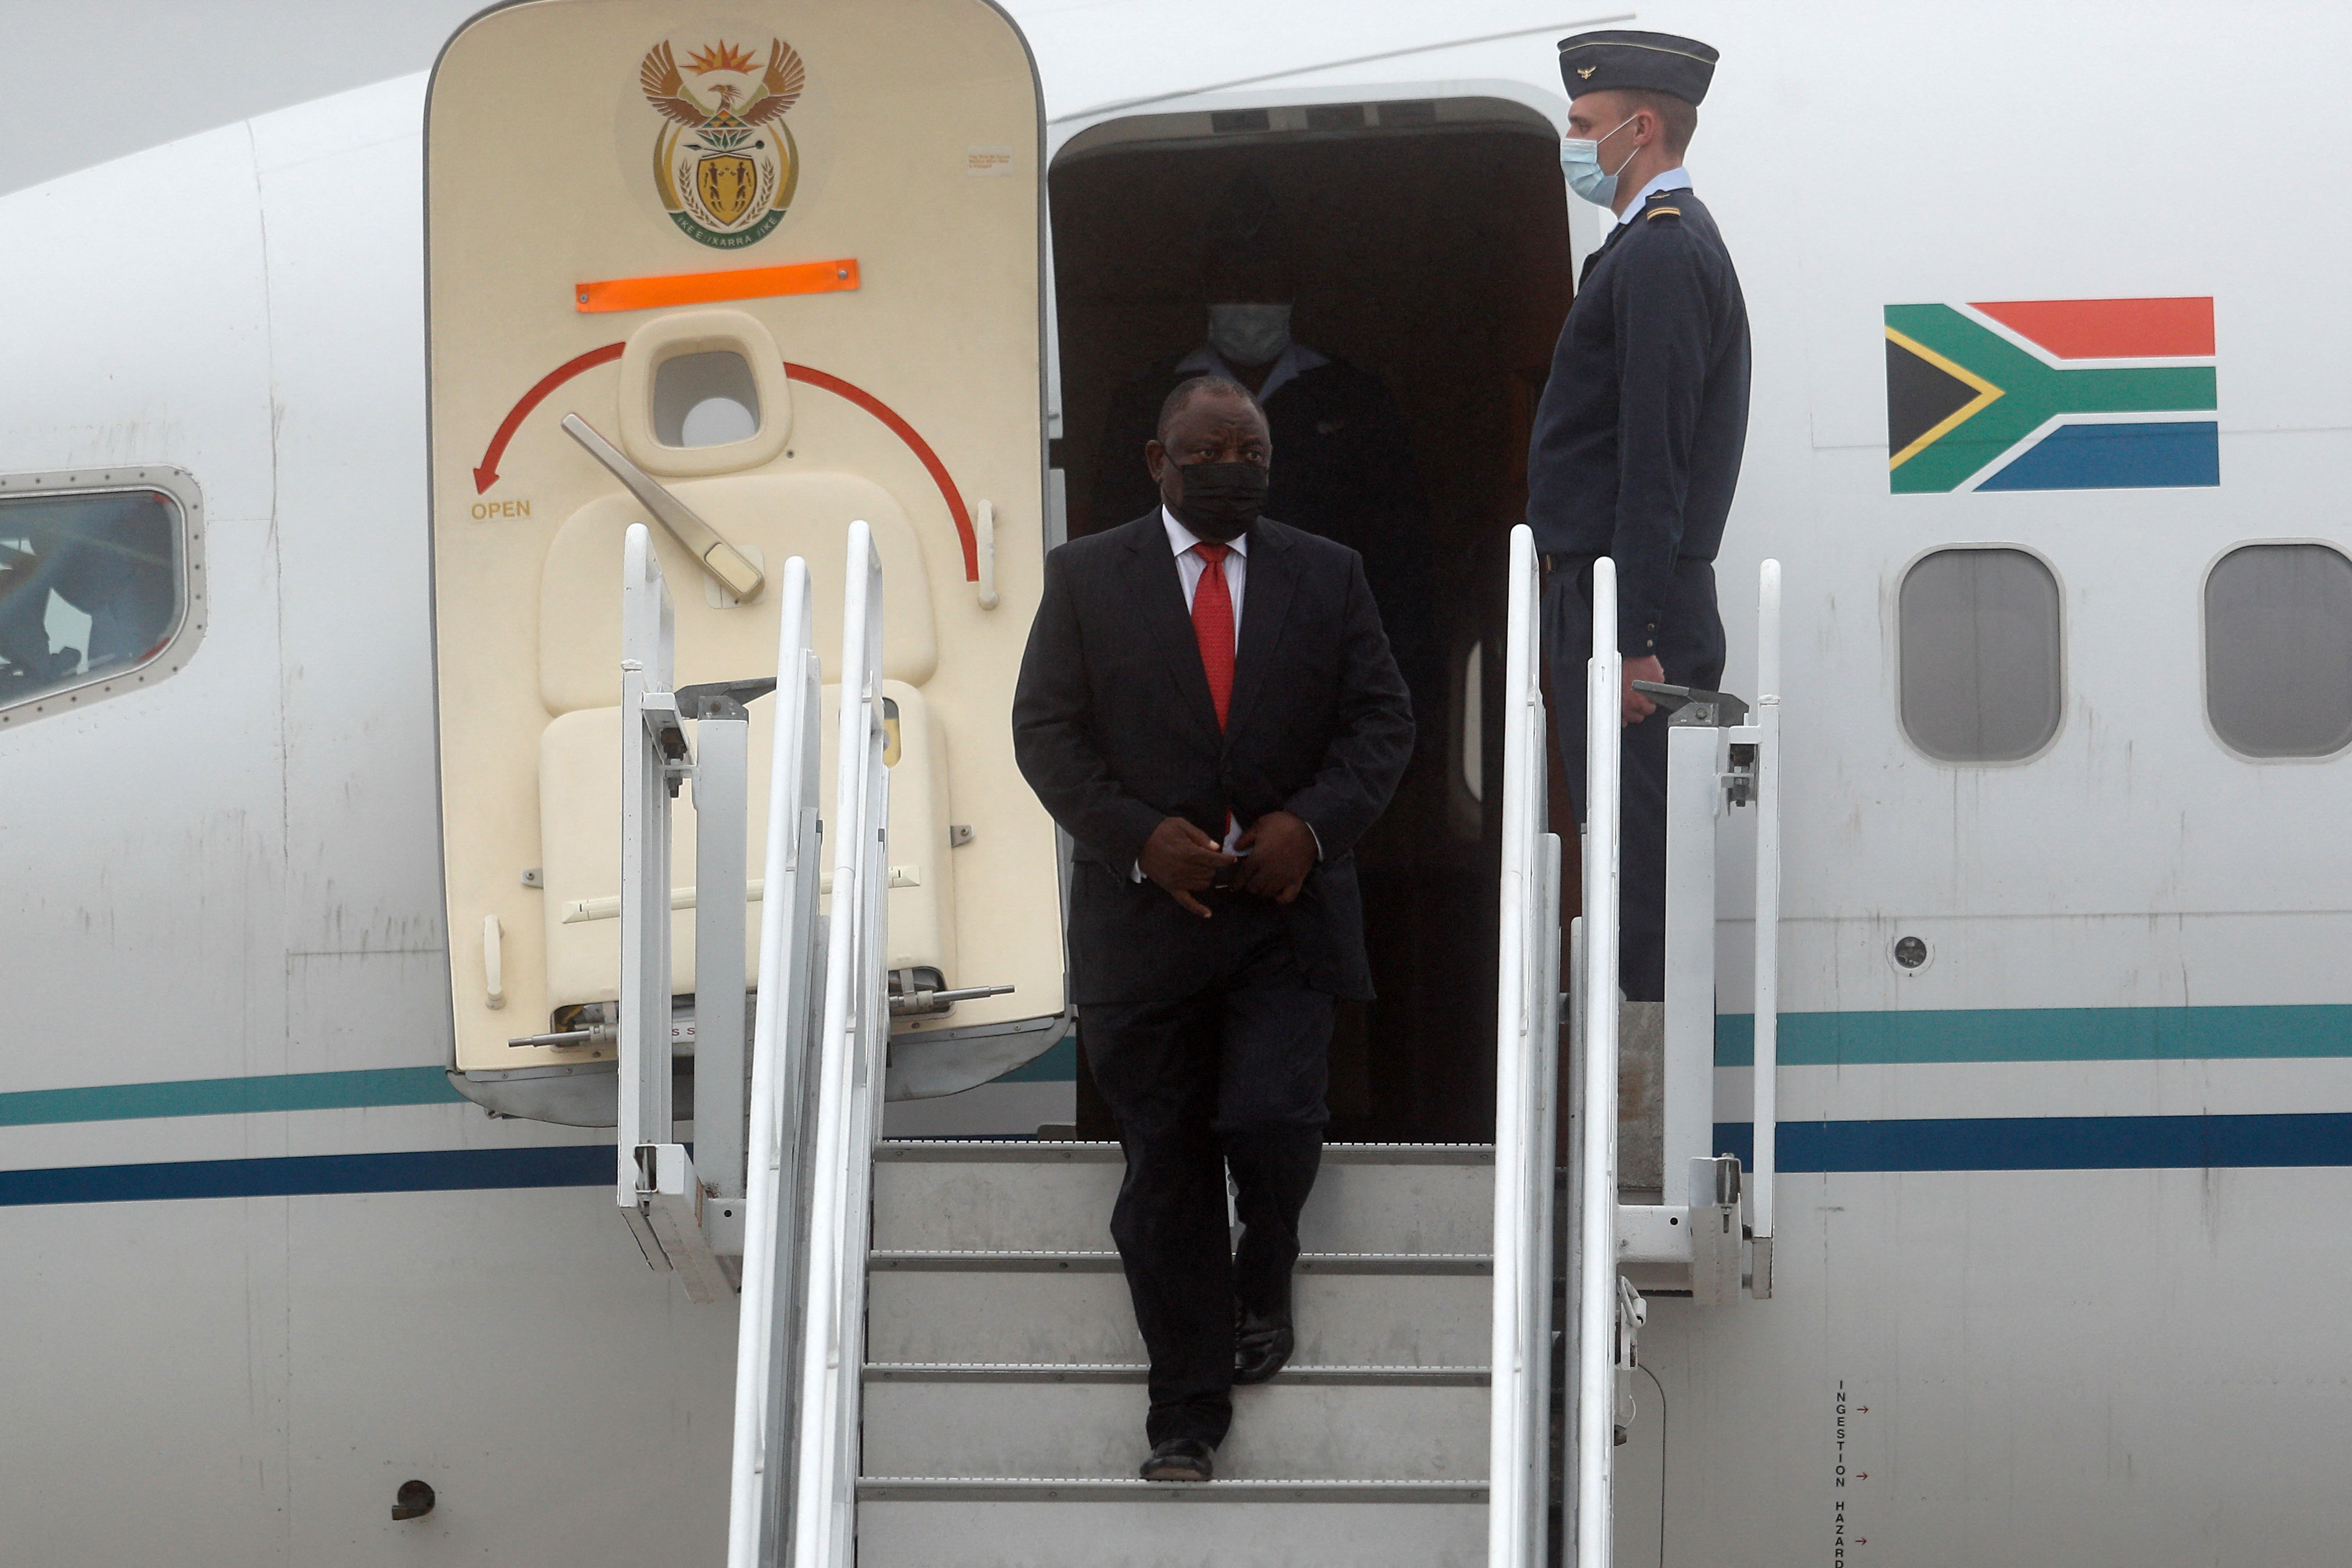 South Africa's President Cyril Ramaphosa arrivesat Cornwall Airport Newquay in England on June 11 for the G7 summit.